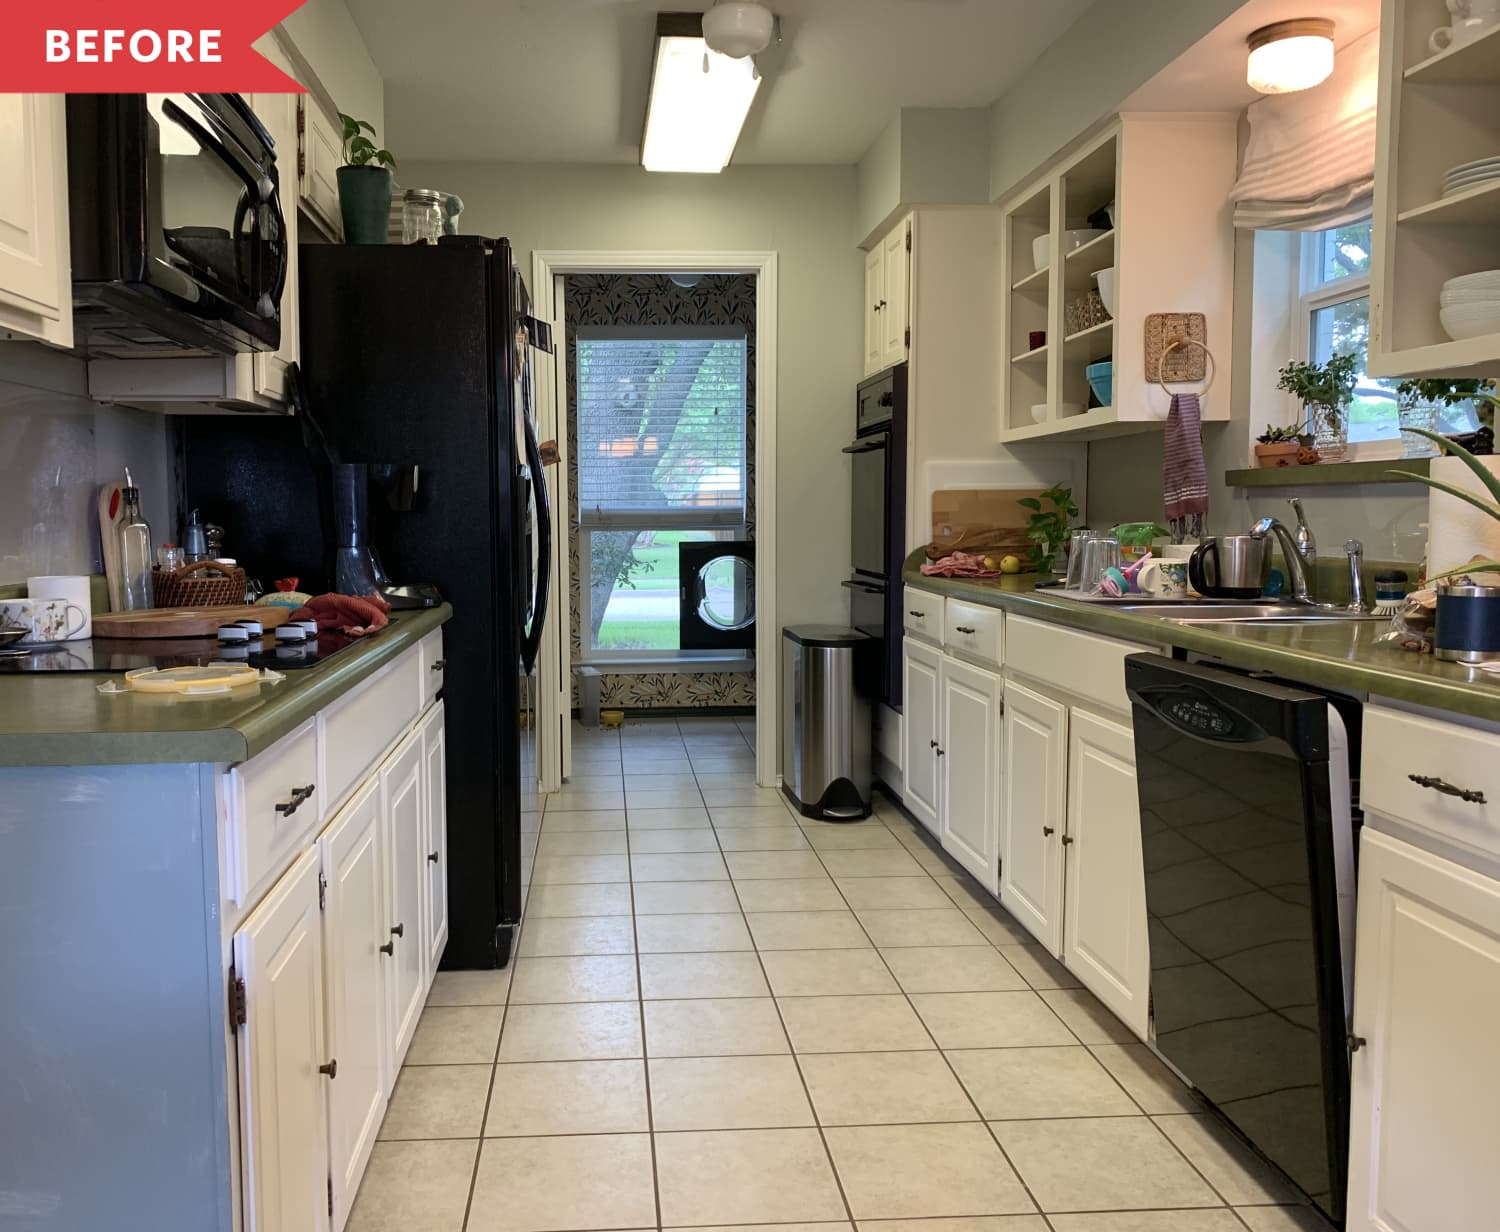 Before & After: Some DIYs and Savvy Shopping Gave This Kitchen a New Look for Just $1,000